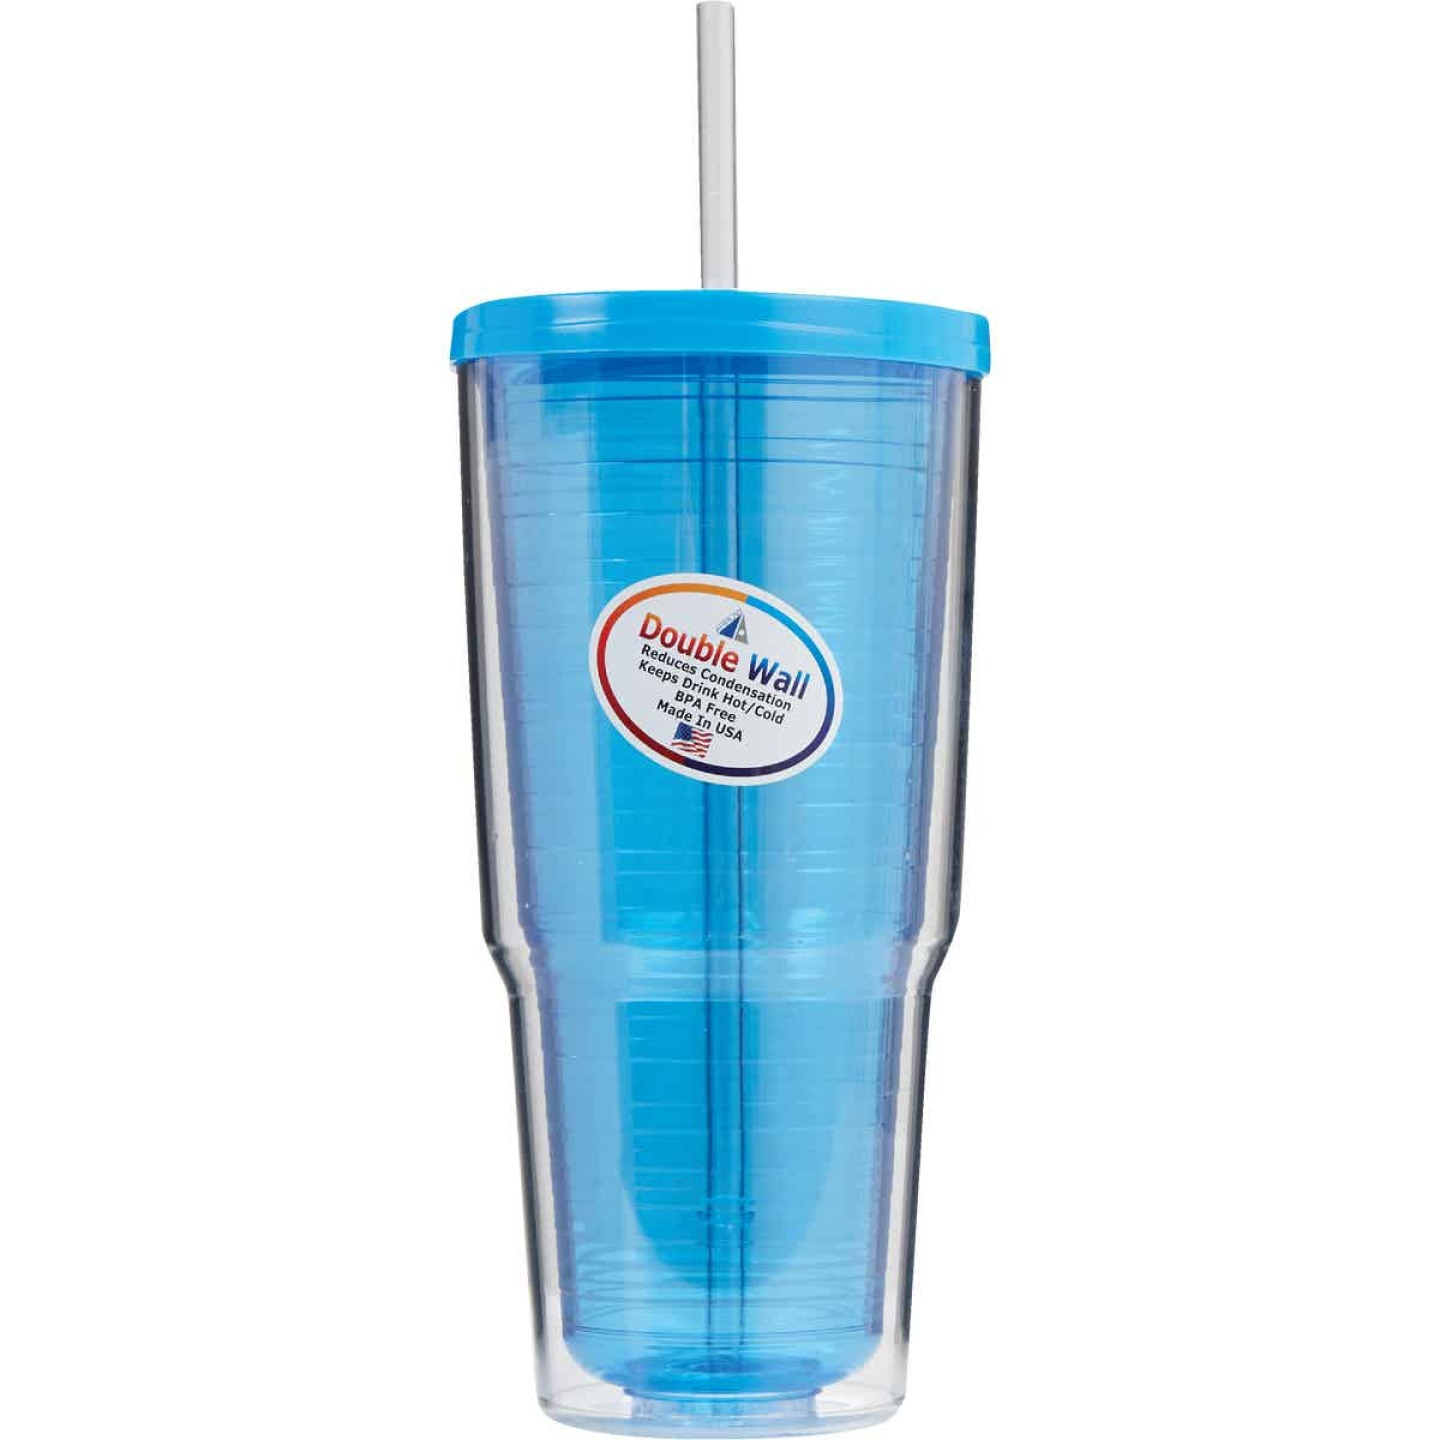 Arrow 24 Oz. Double Wall Insulated Tumbler Image 1